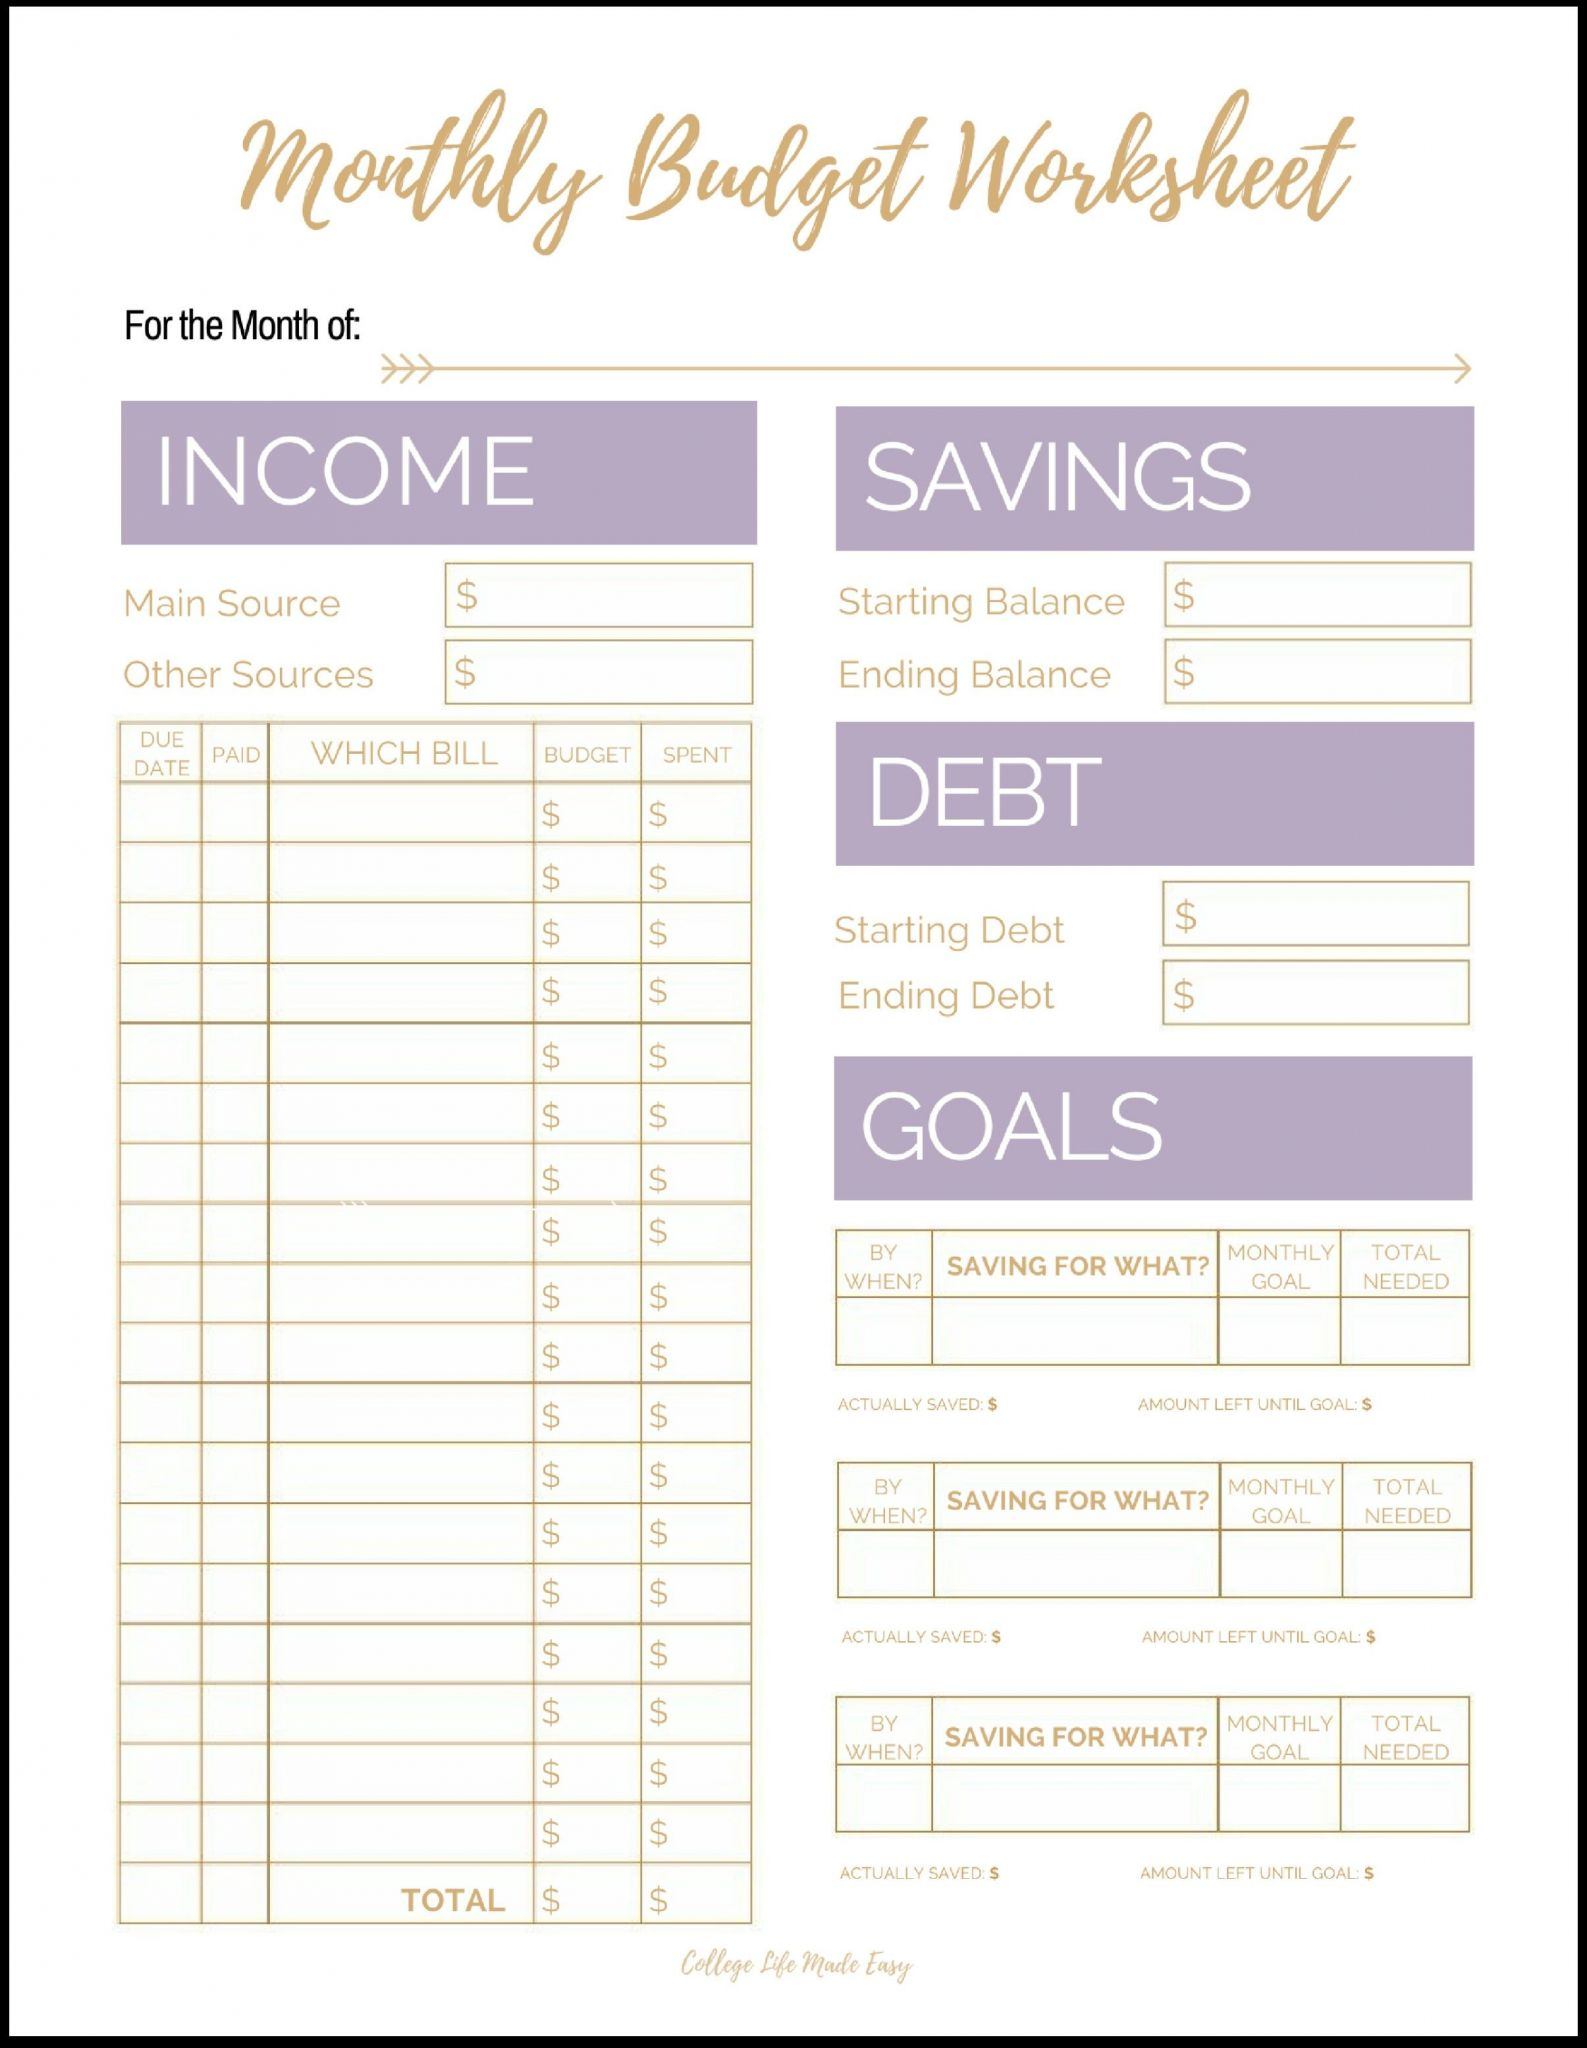 Monthly Budget Worksheet Printable